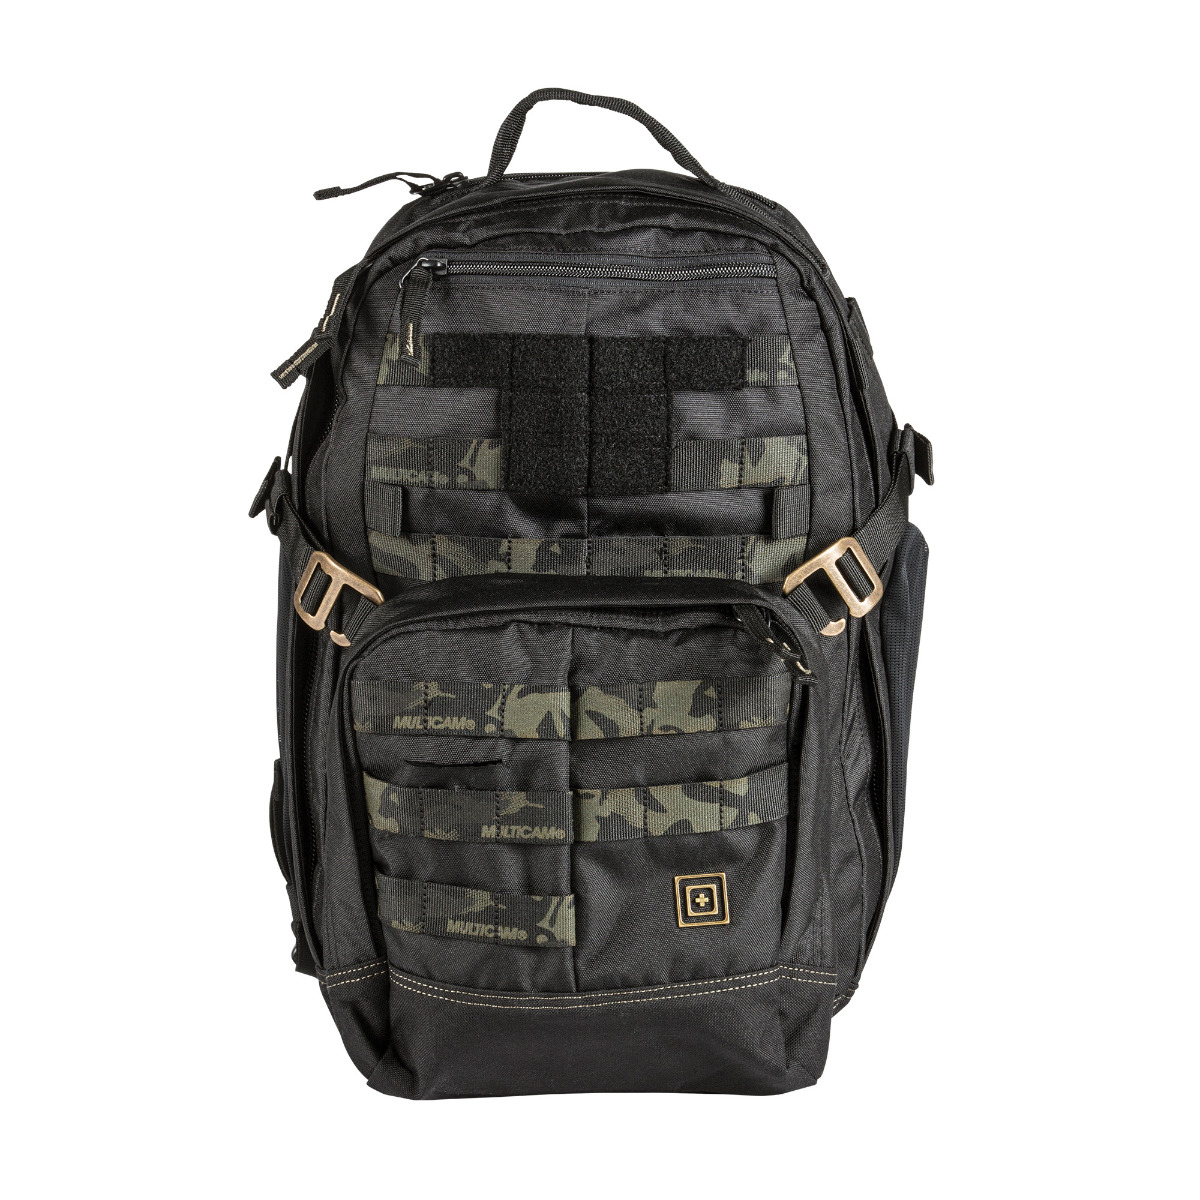 5.11 Tactical Women's Mira 2-in-1 Pack (Black) thumbnail